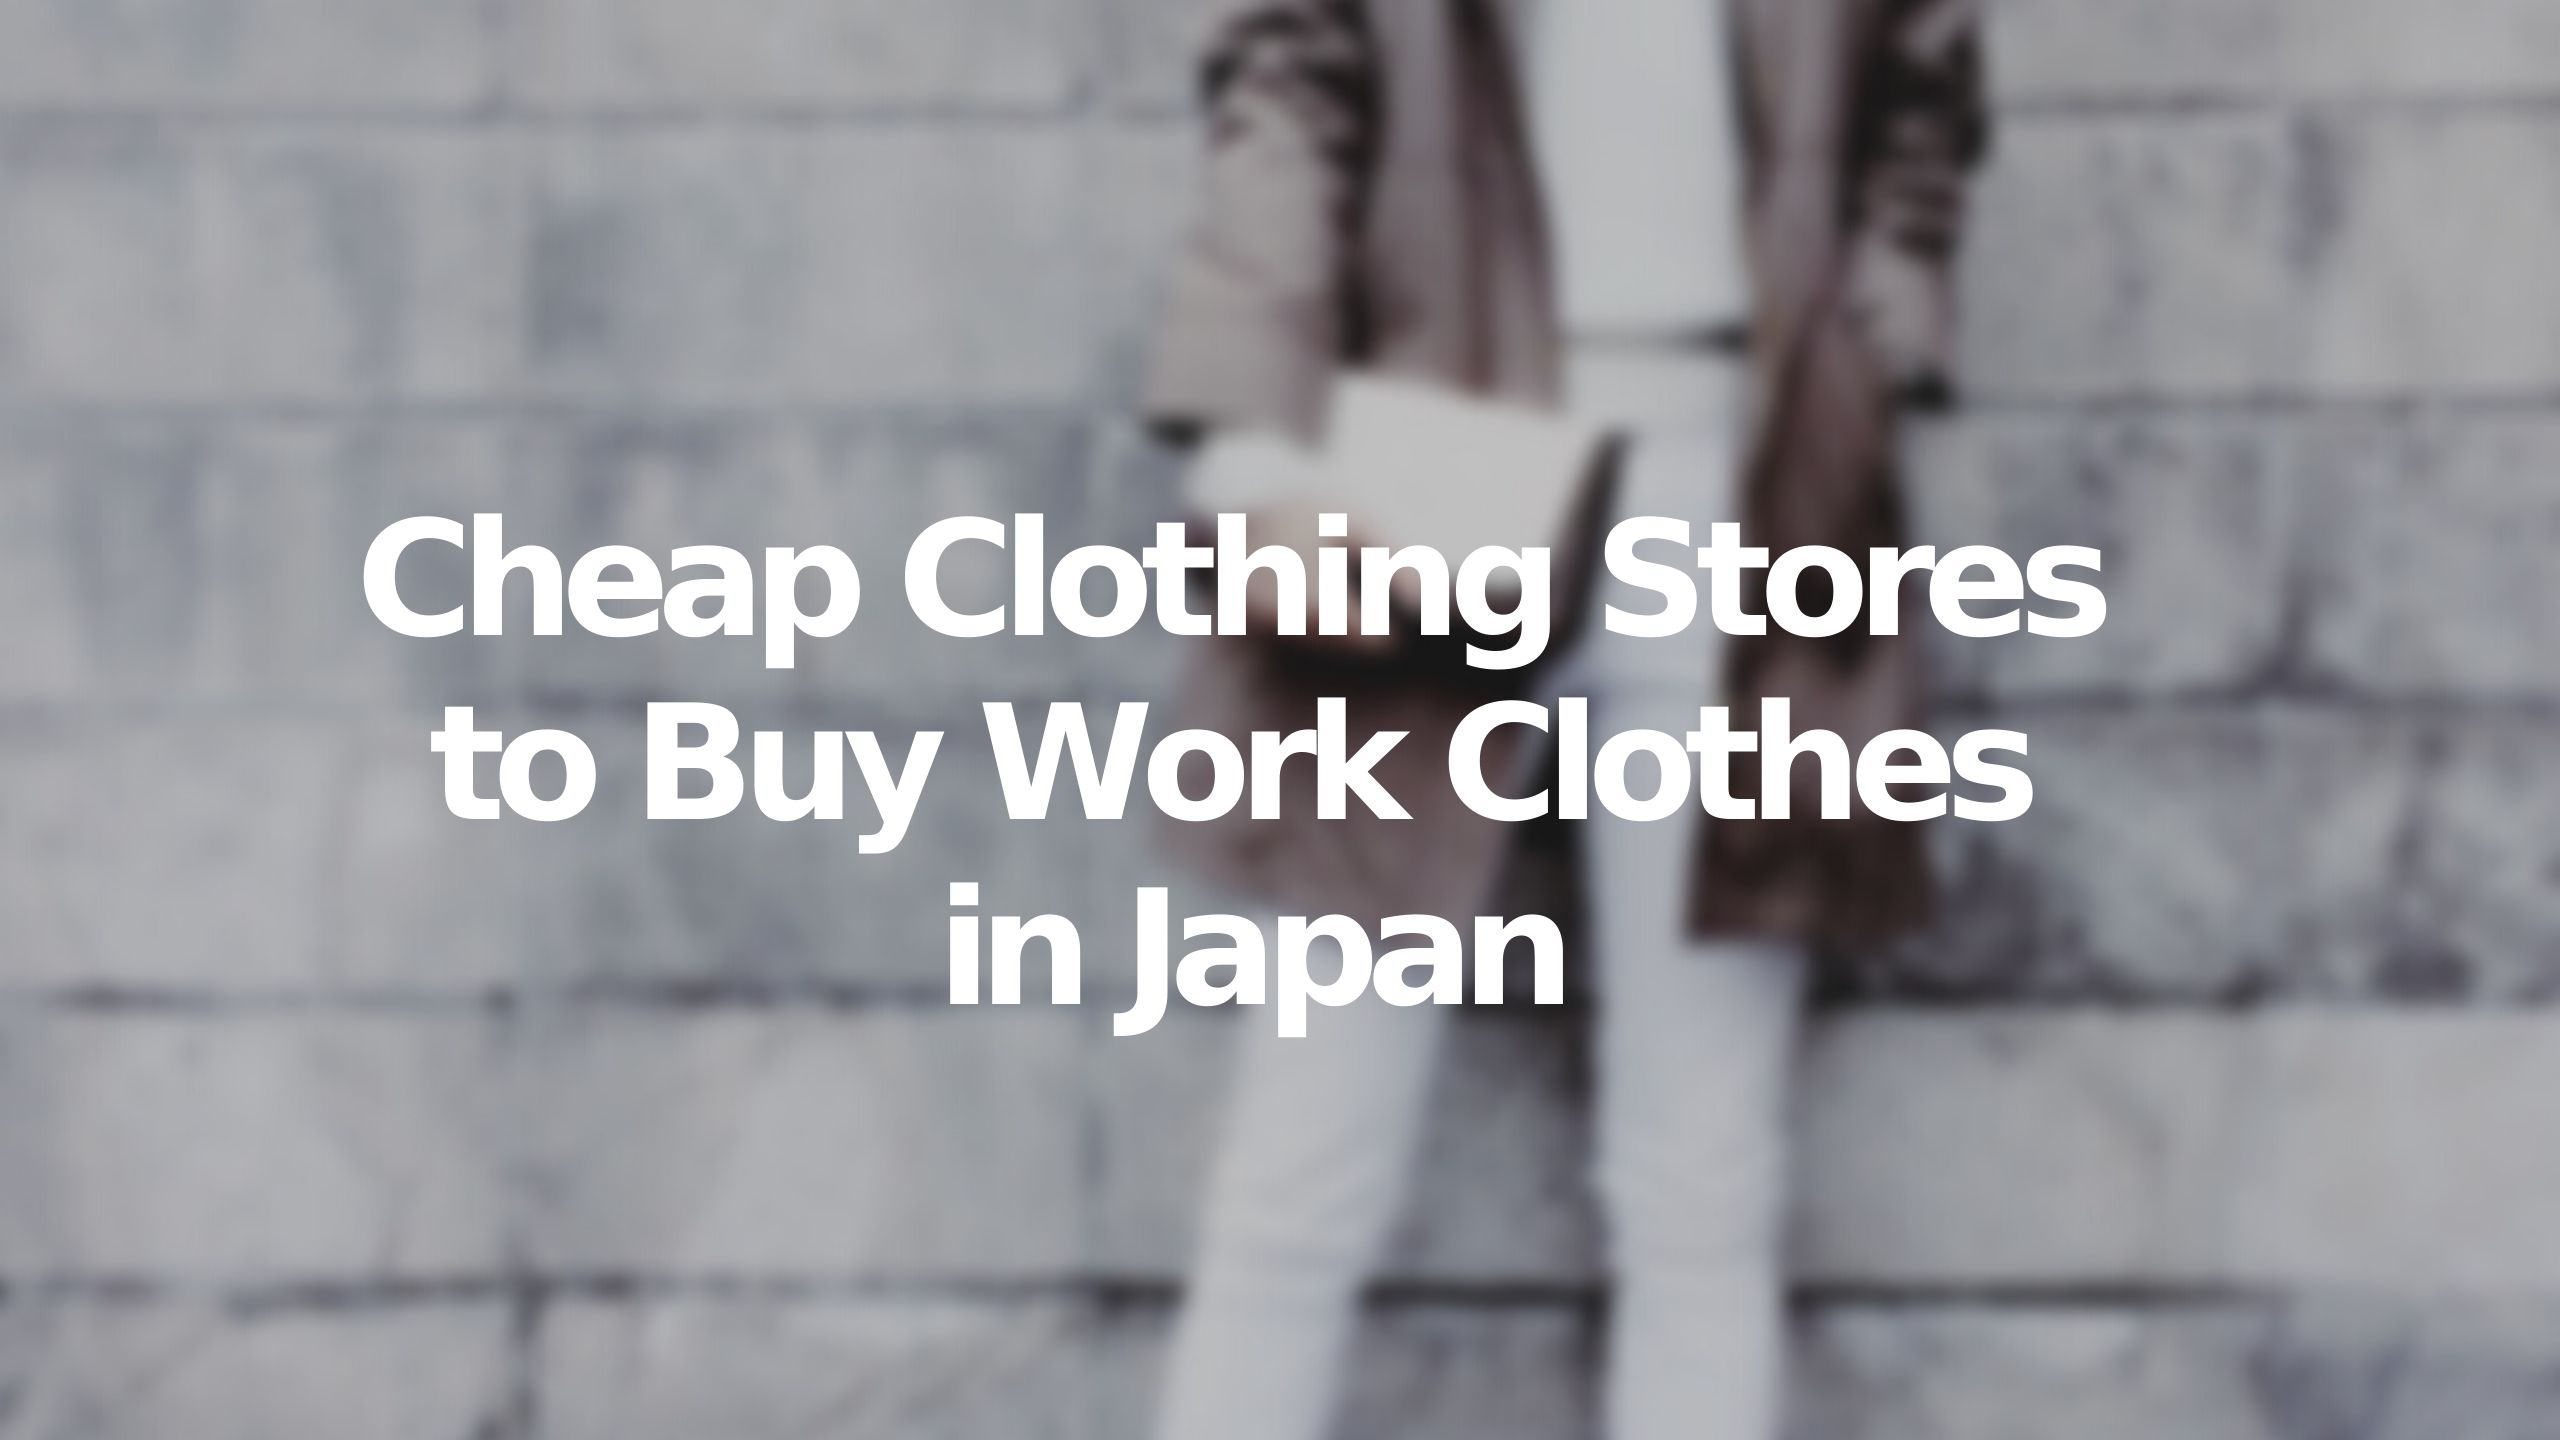 Cheap Clothing Stores to Buy Work Clothes in Japan